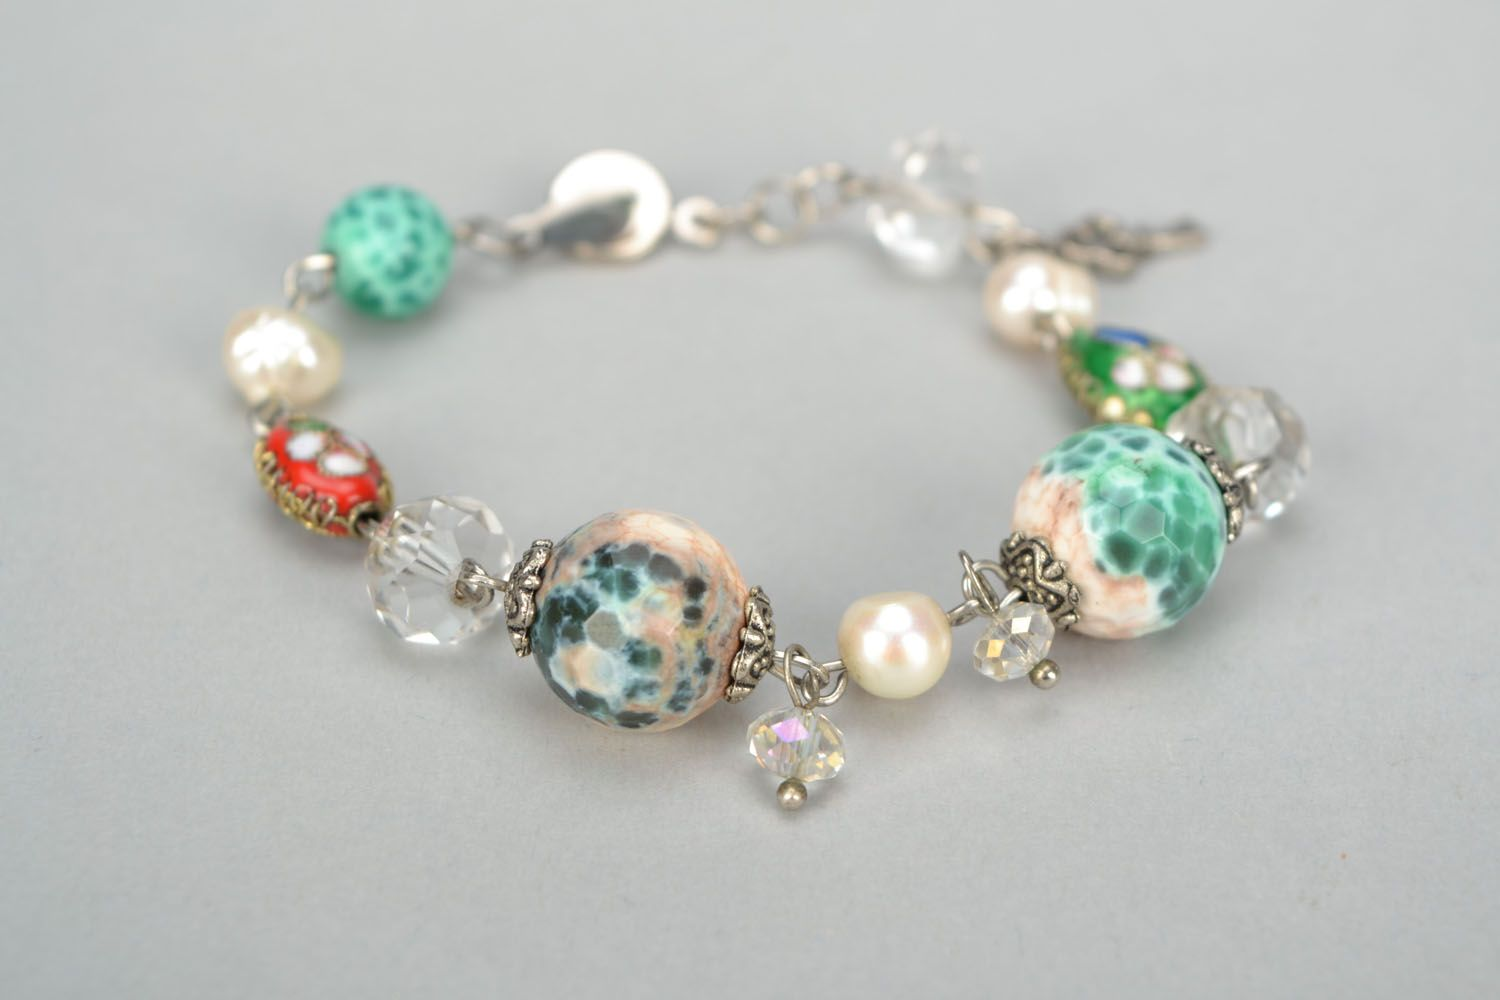 Bracelet with agate and river pearls photo 4